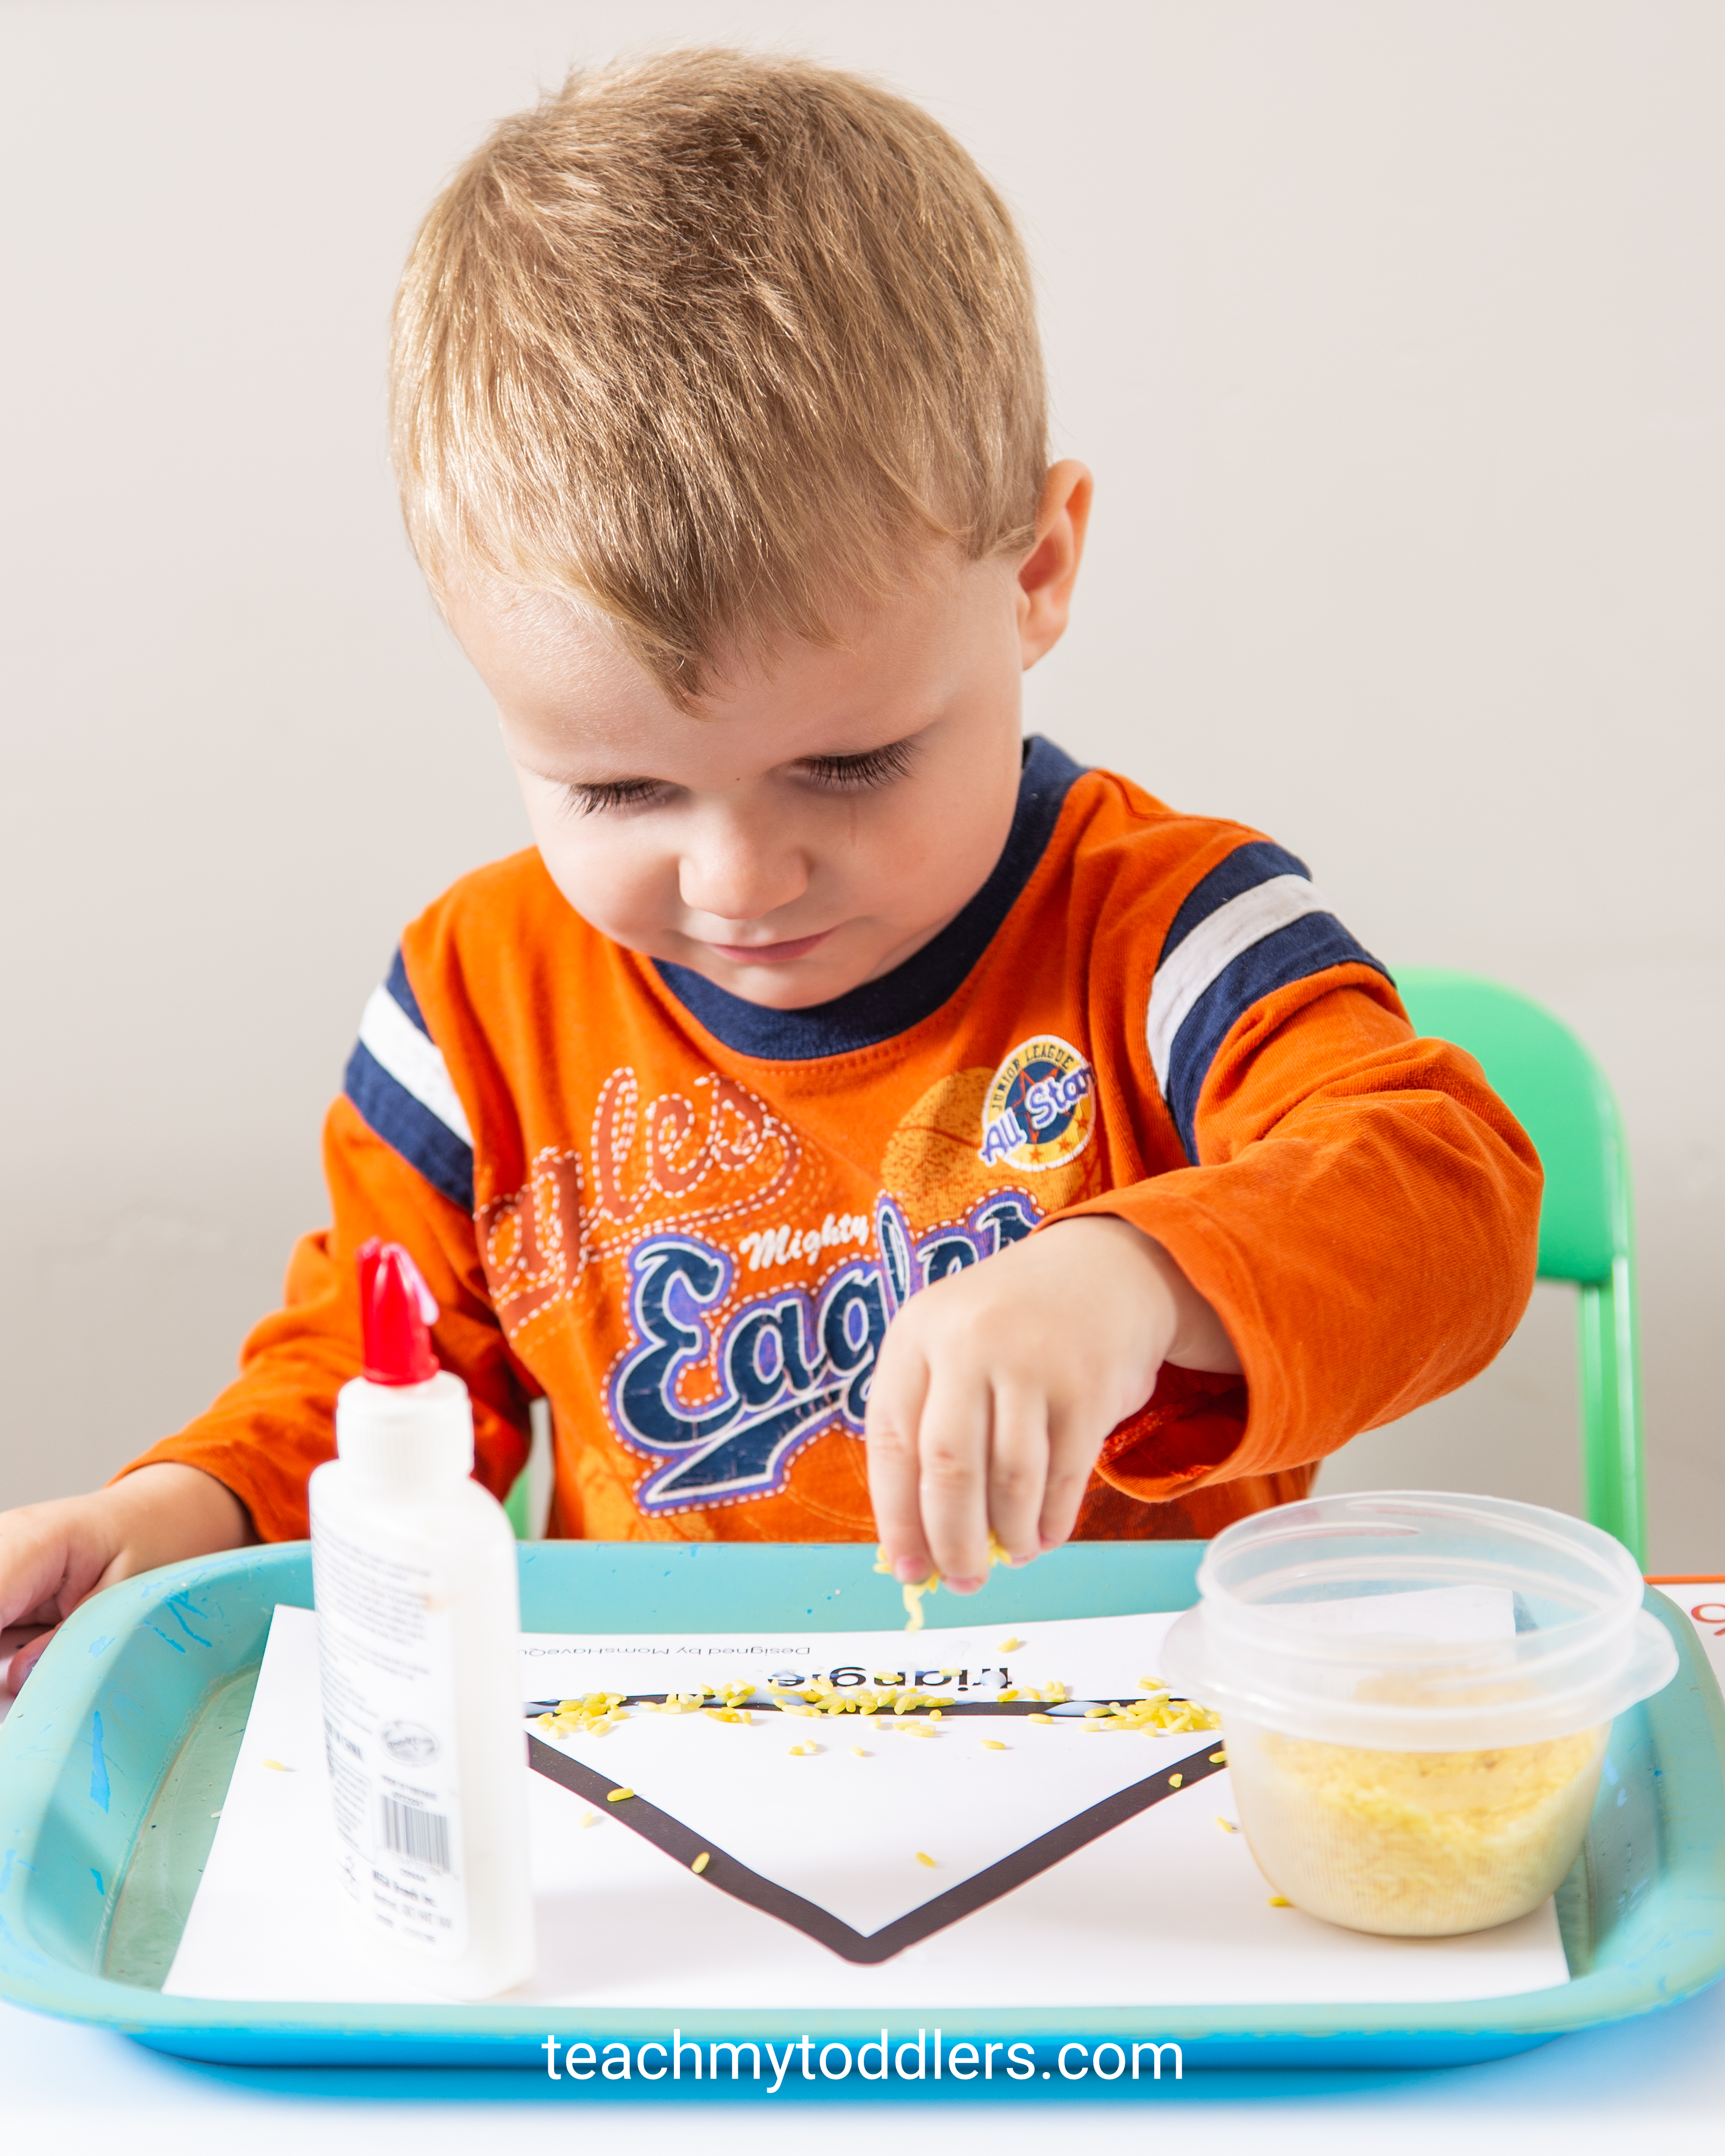 Use these fun triangle trays to teach your toddlers shapes